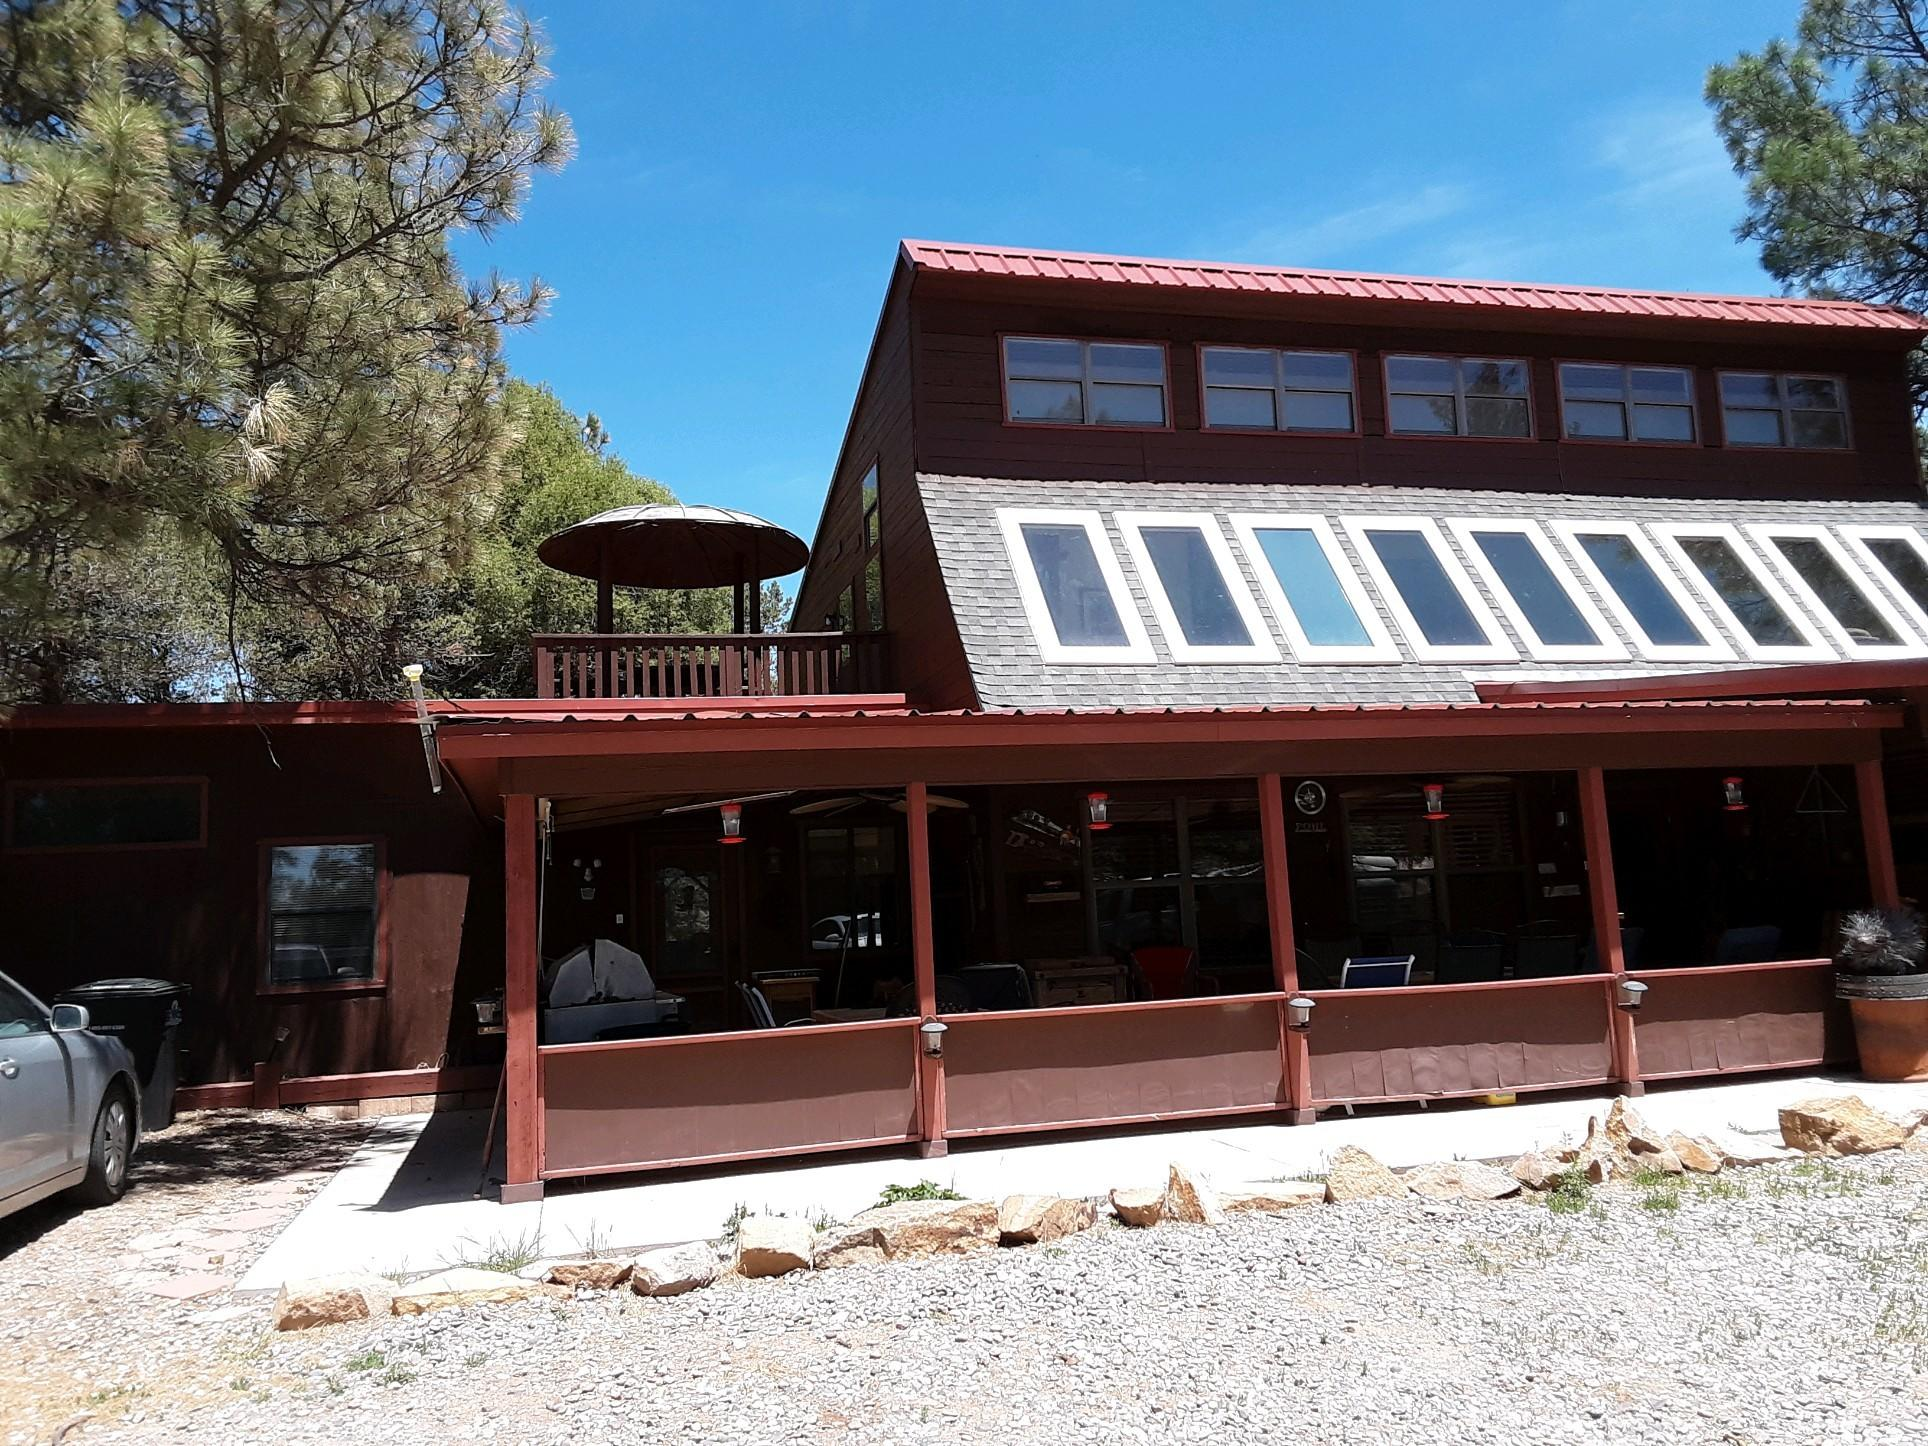 If you are looking for mountain living at its best then this is the home for you. Great neighborhood on a very quite cul-de-sac. Very unique home. Home is all custom designed with very custom furnishings. Furnishings negotiable. All built with the same design.